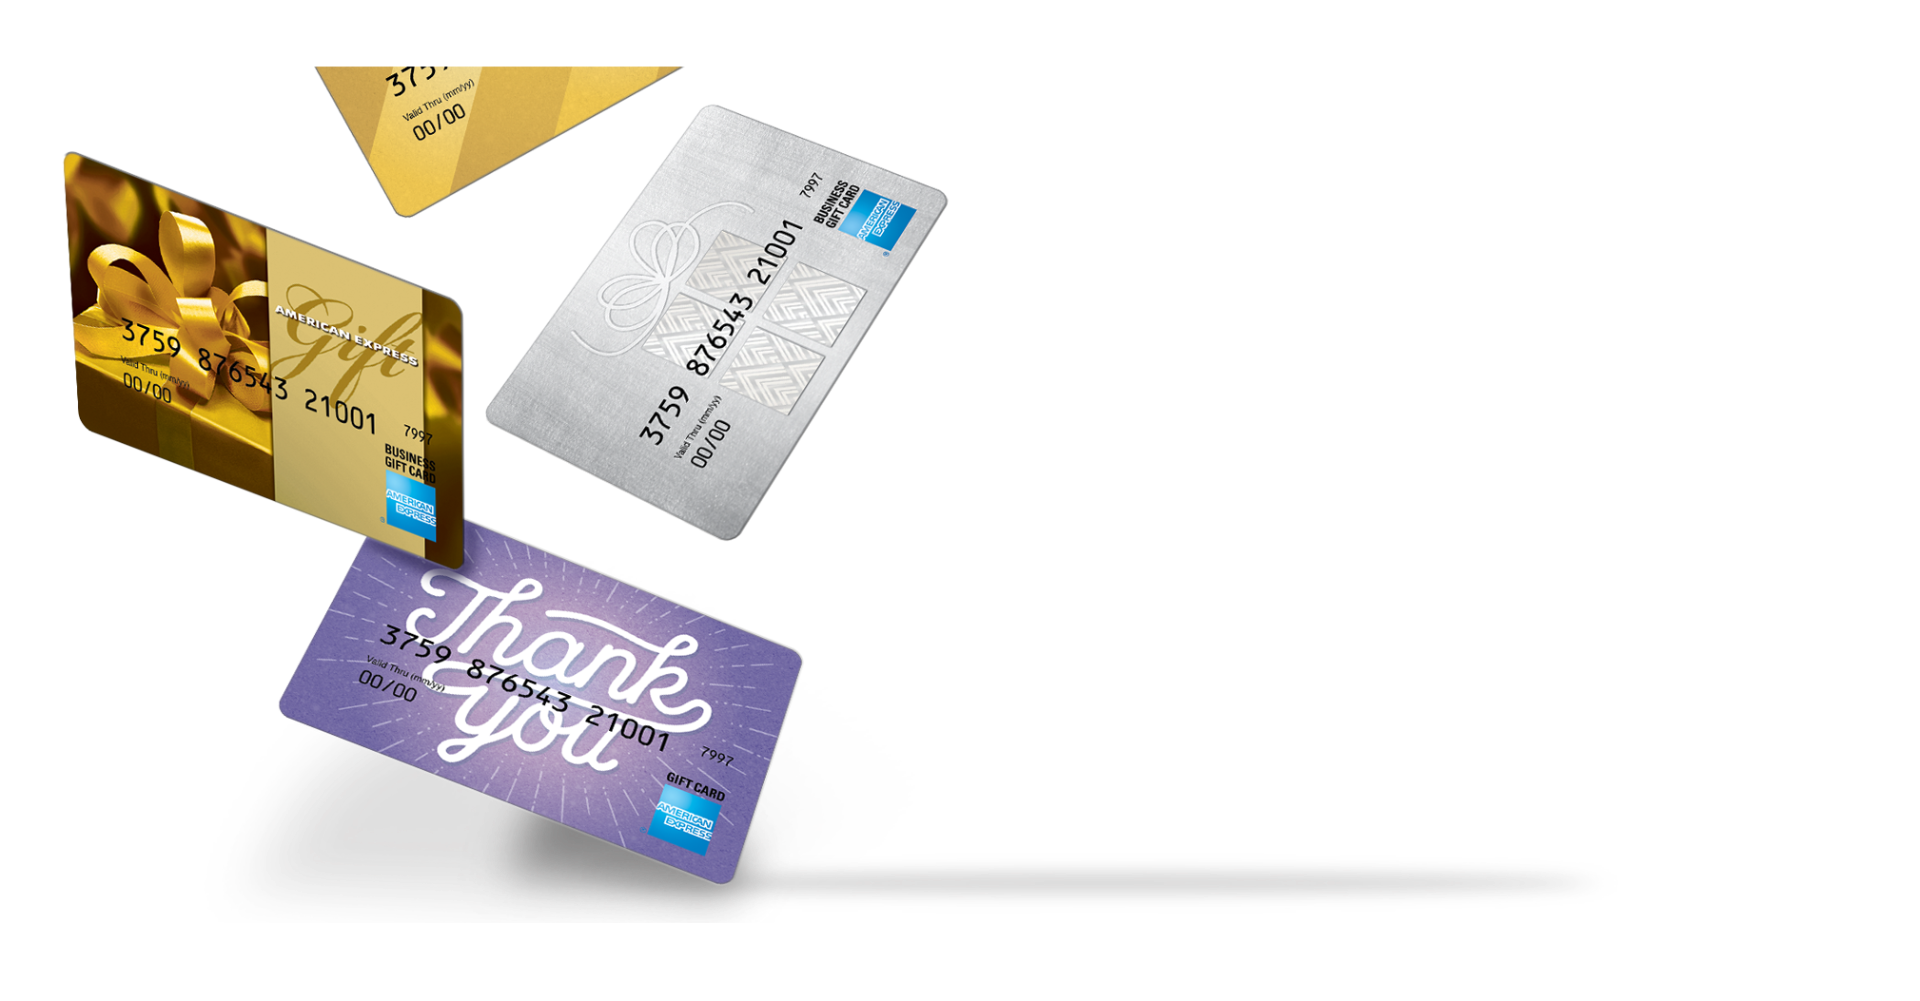 Gift Cards and Business Gift Cards from American Express